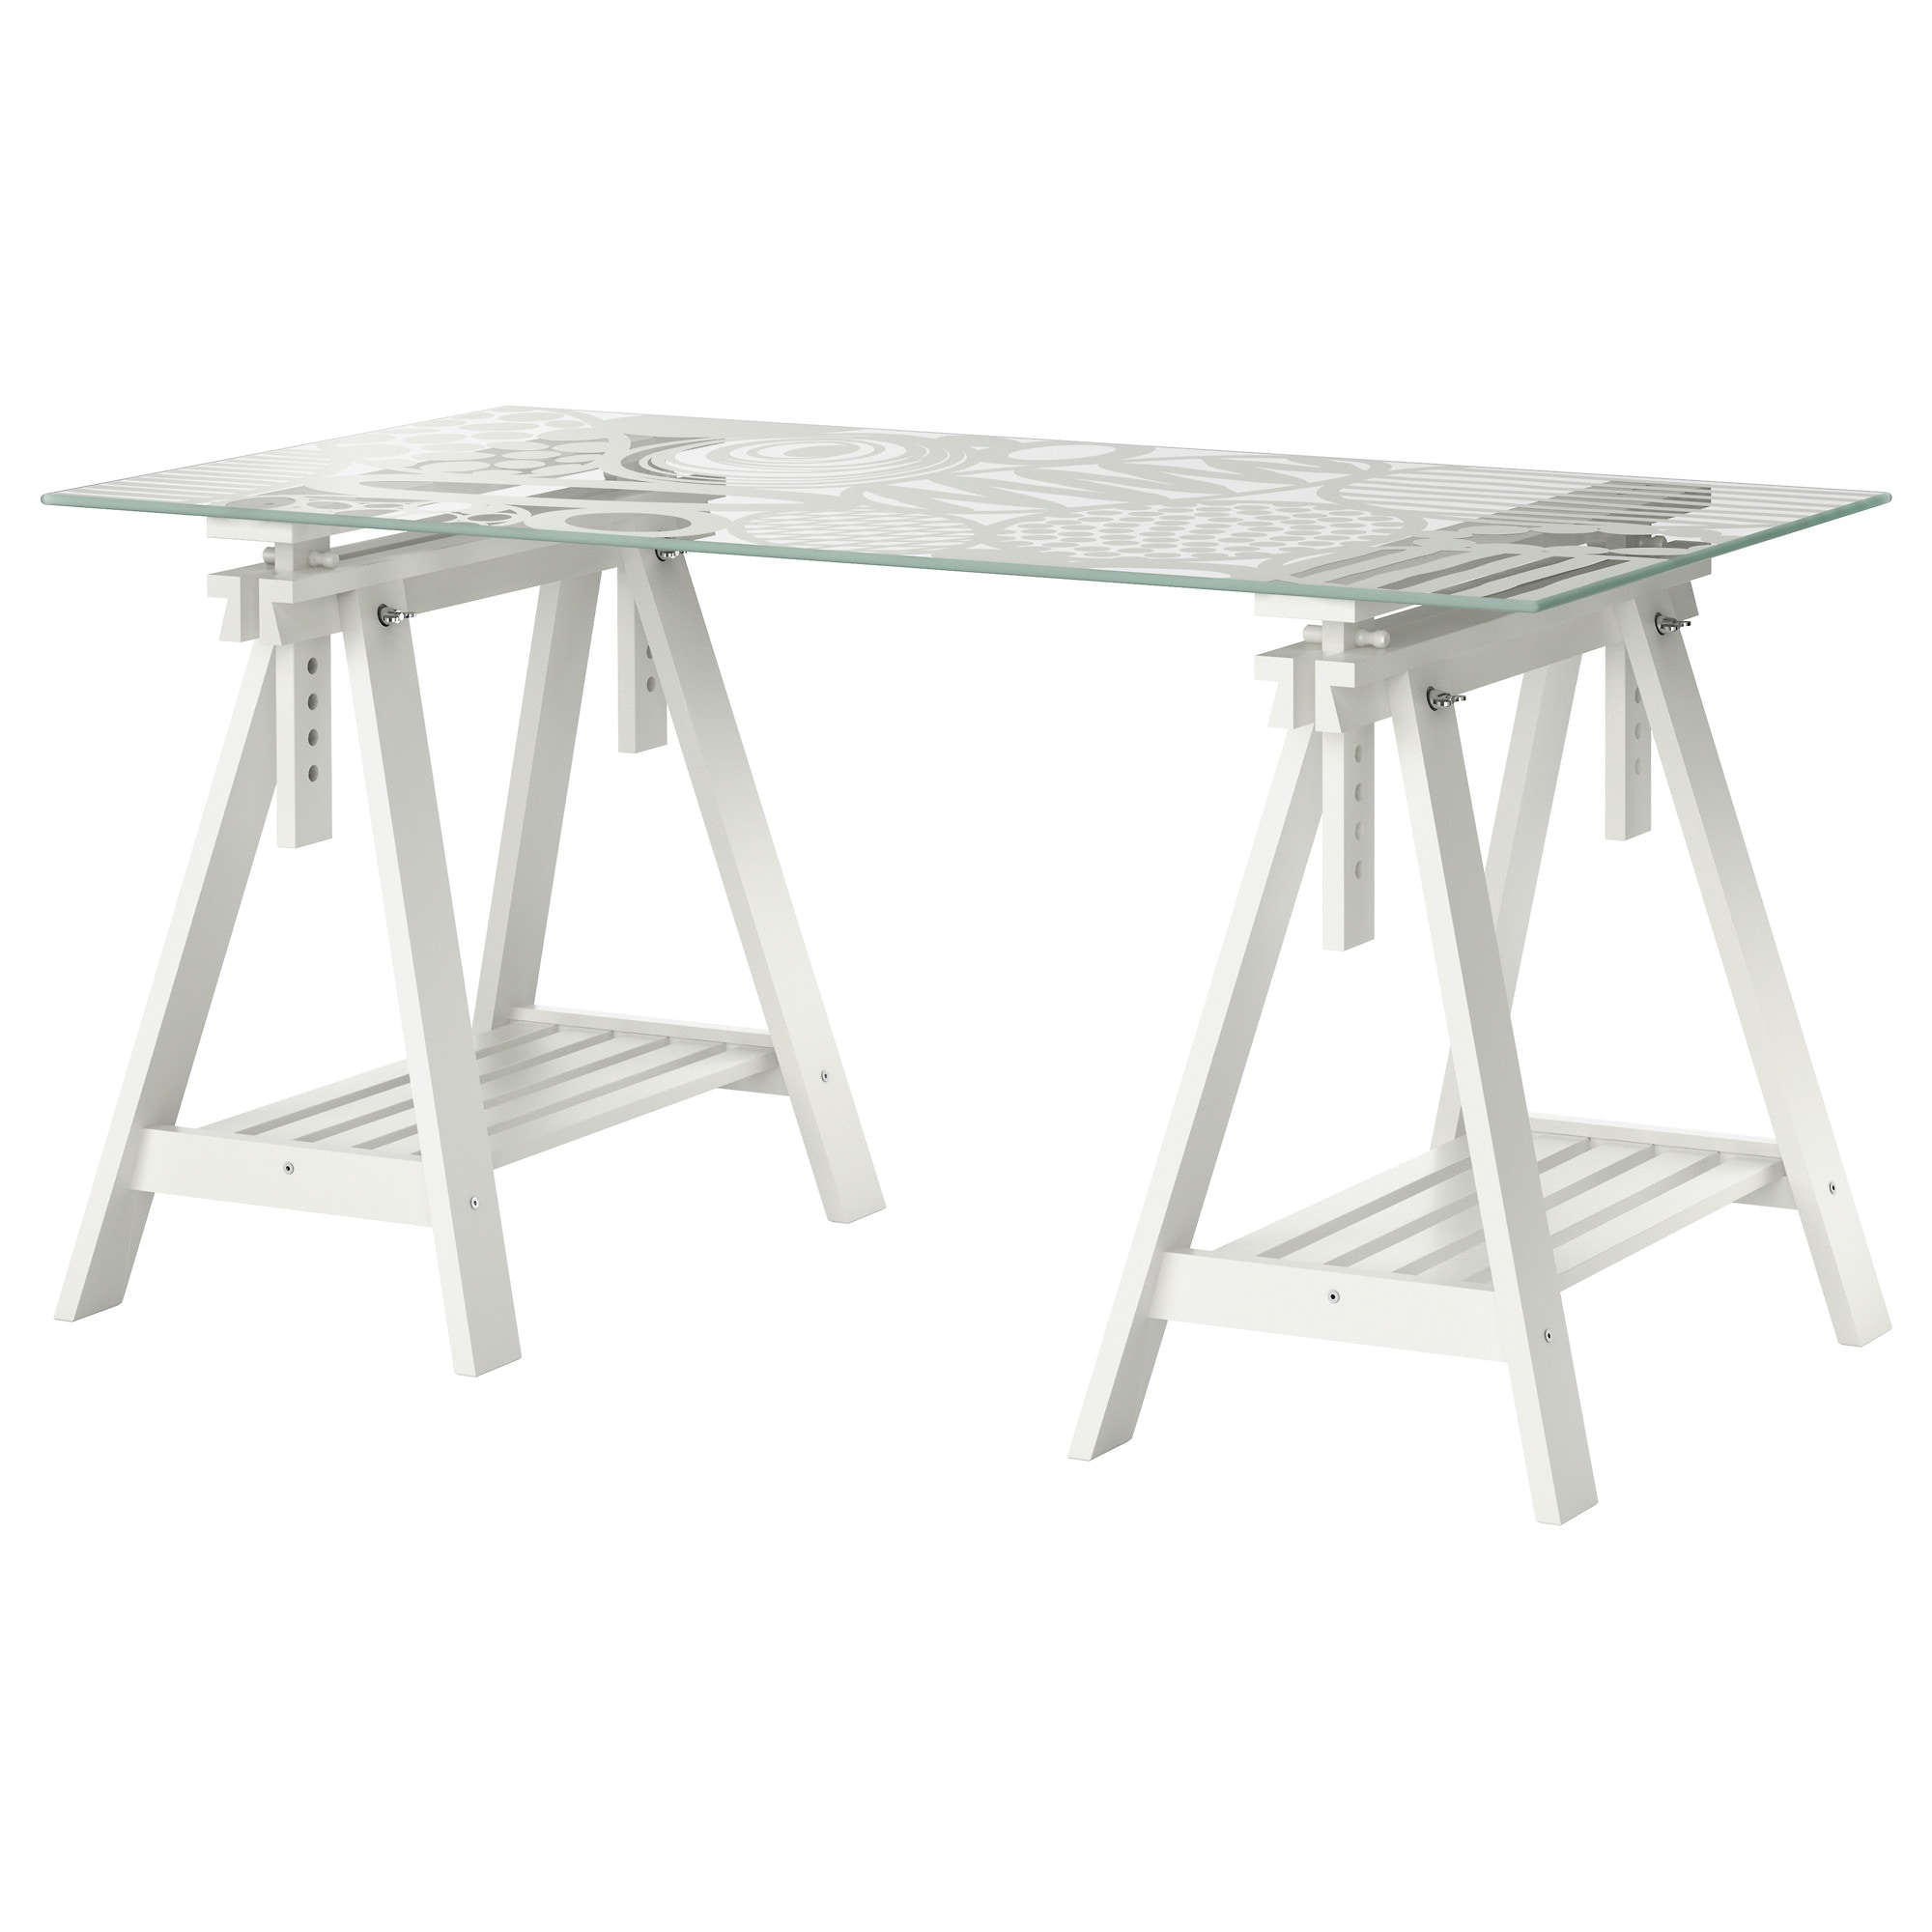 Ikea glass table desk - Ikea Glass Table Desk 8